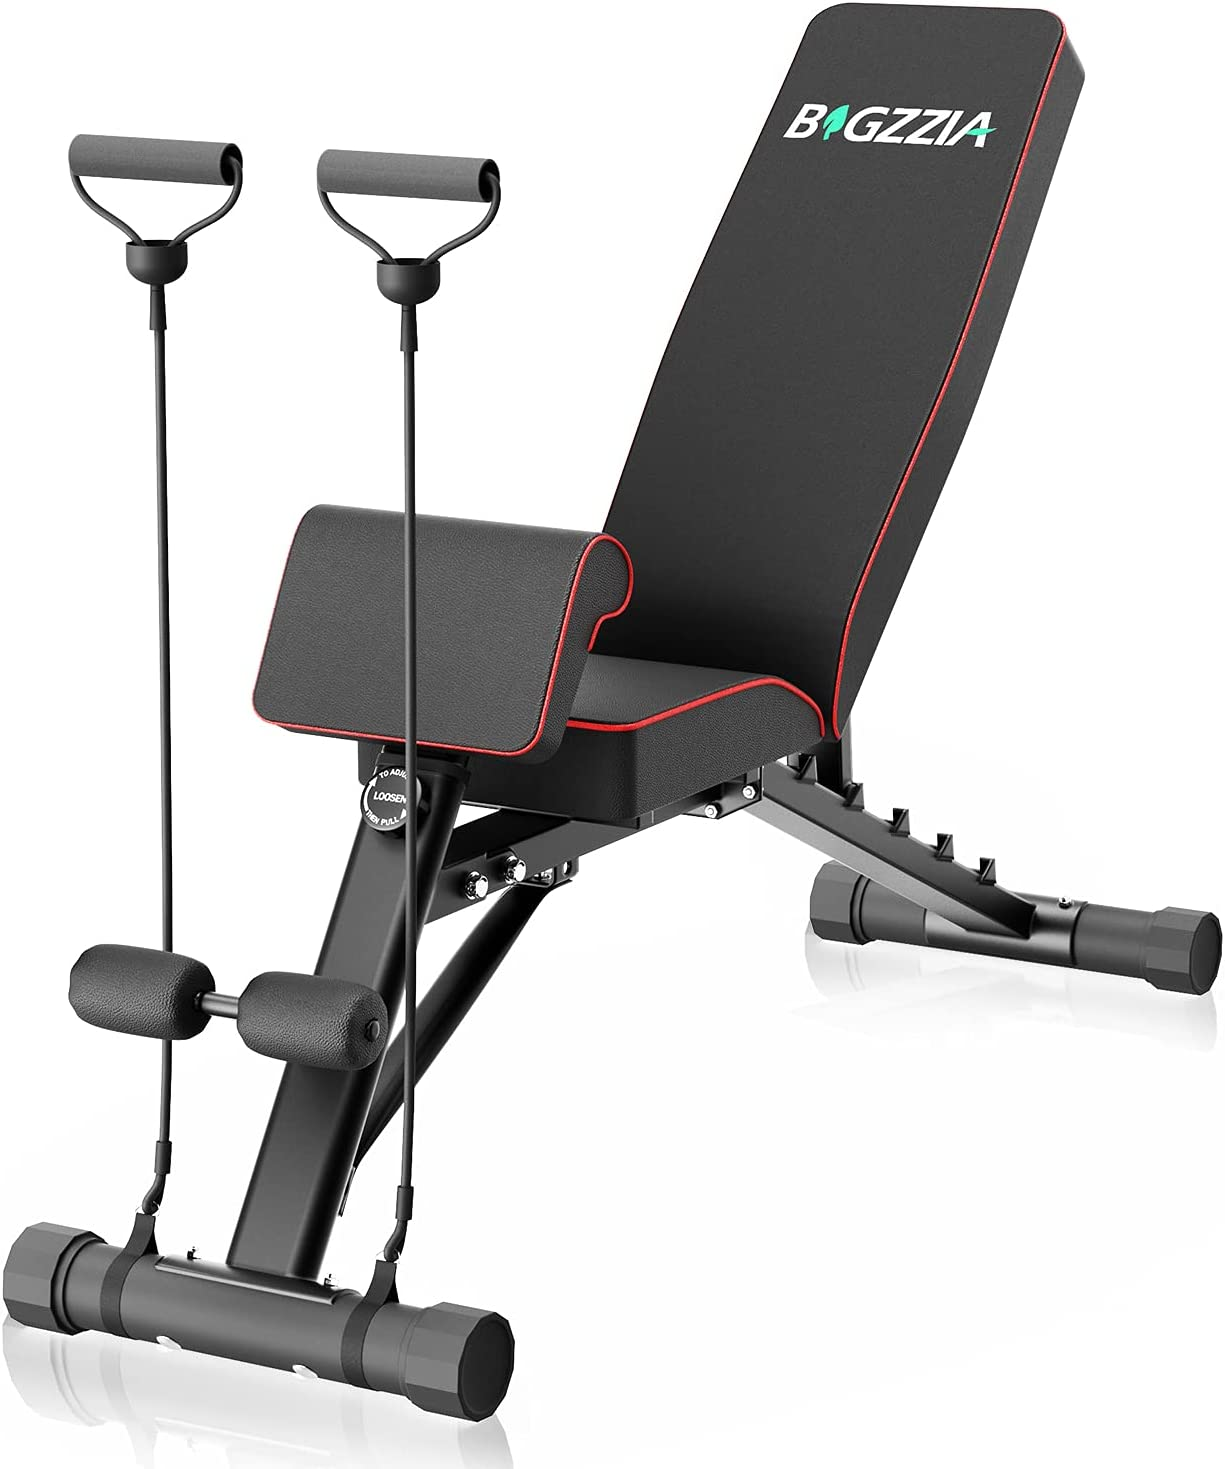 Bigzzia Weight Bench Adjustable Strength Training Bench for Full Body Workout All-in-One Durable Exercise Bench Flat/Incline/Decline Workout Bench for Home Gym Dumbbells Bench with Widen Seat